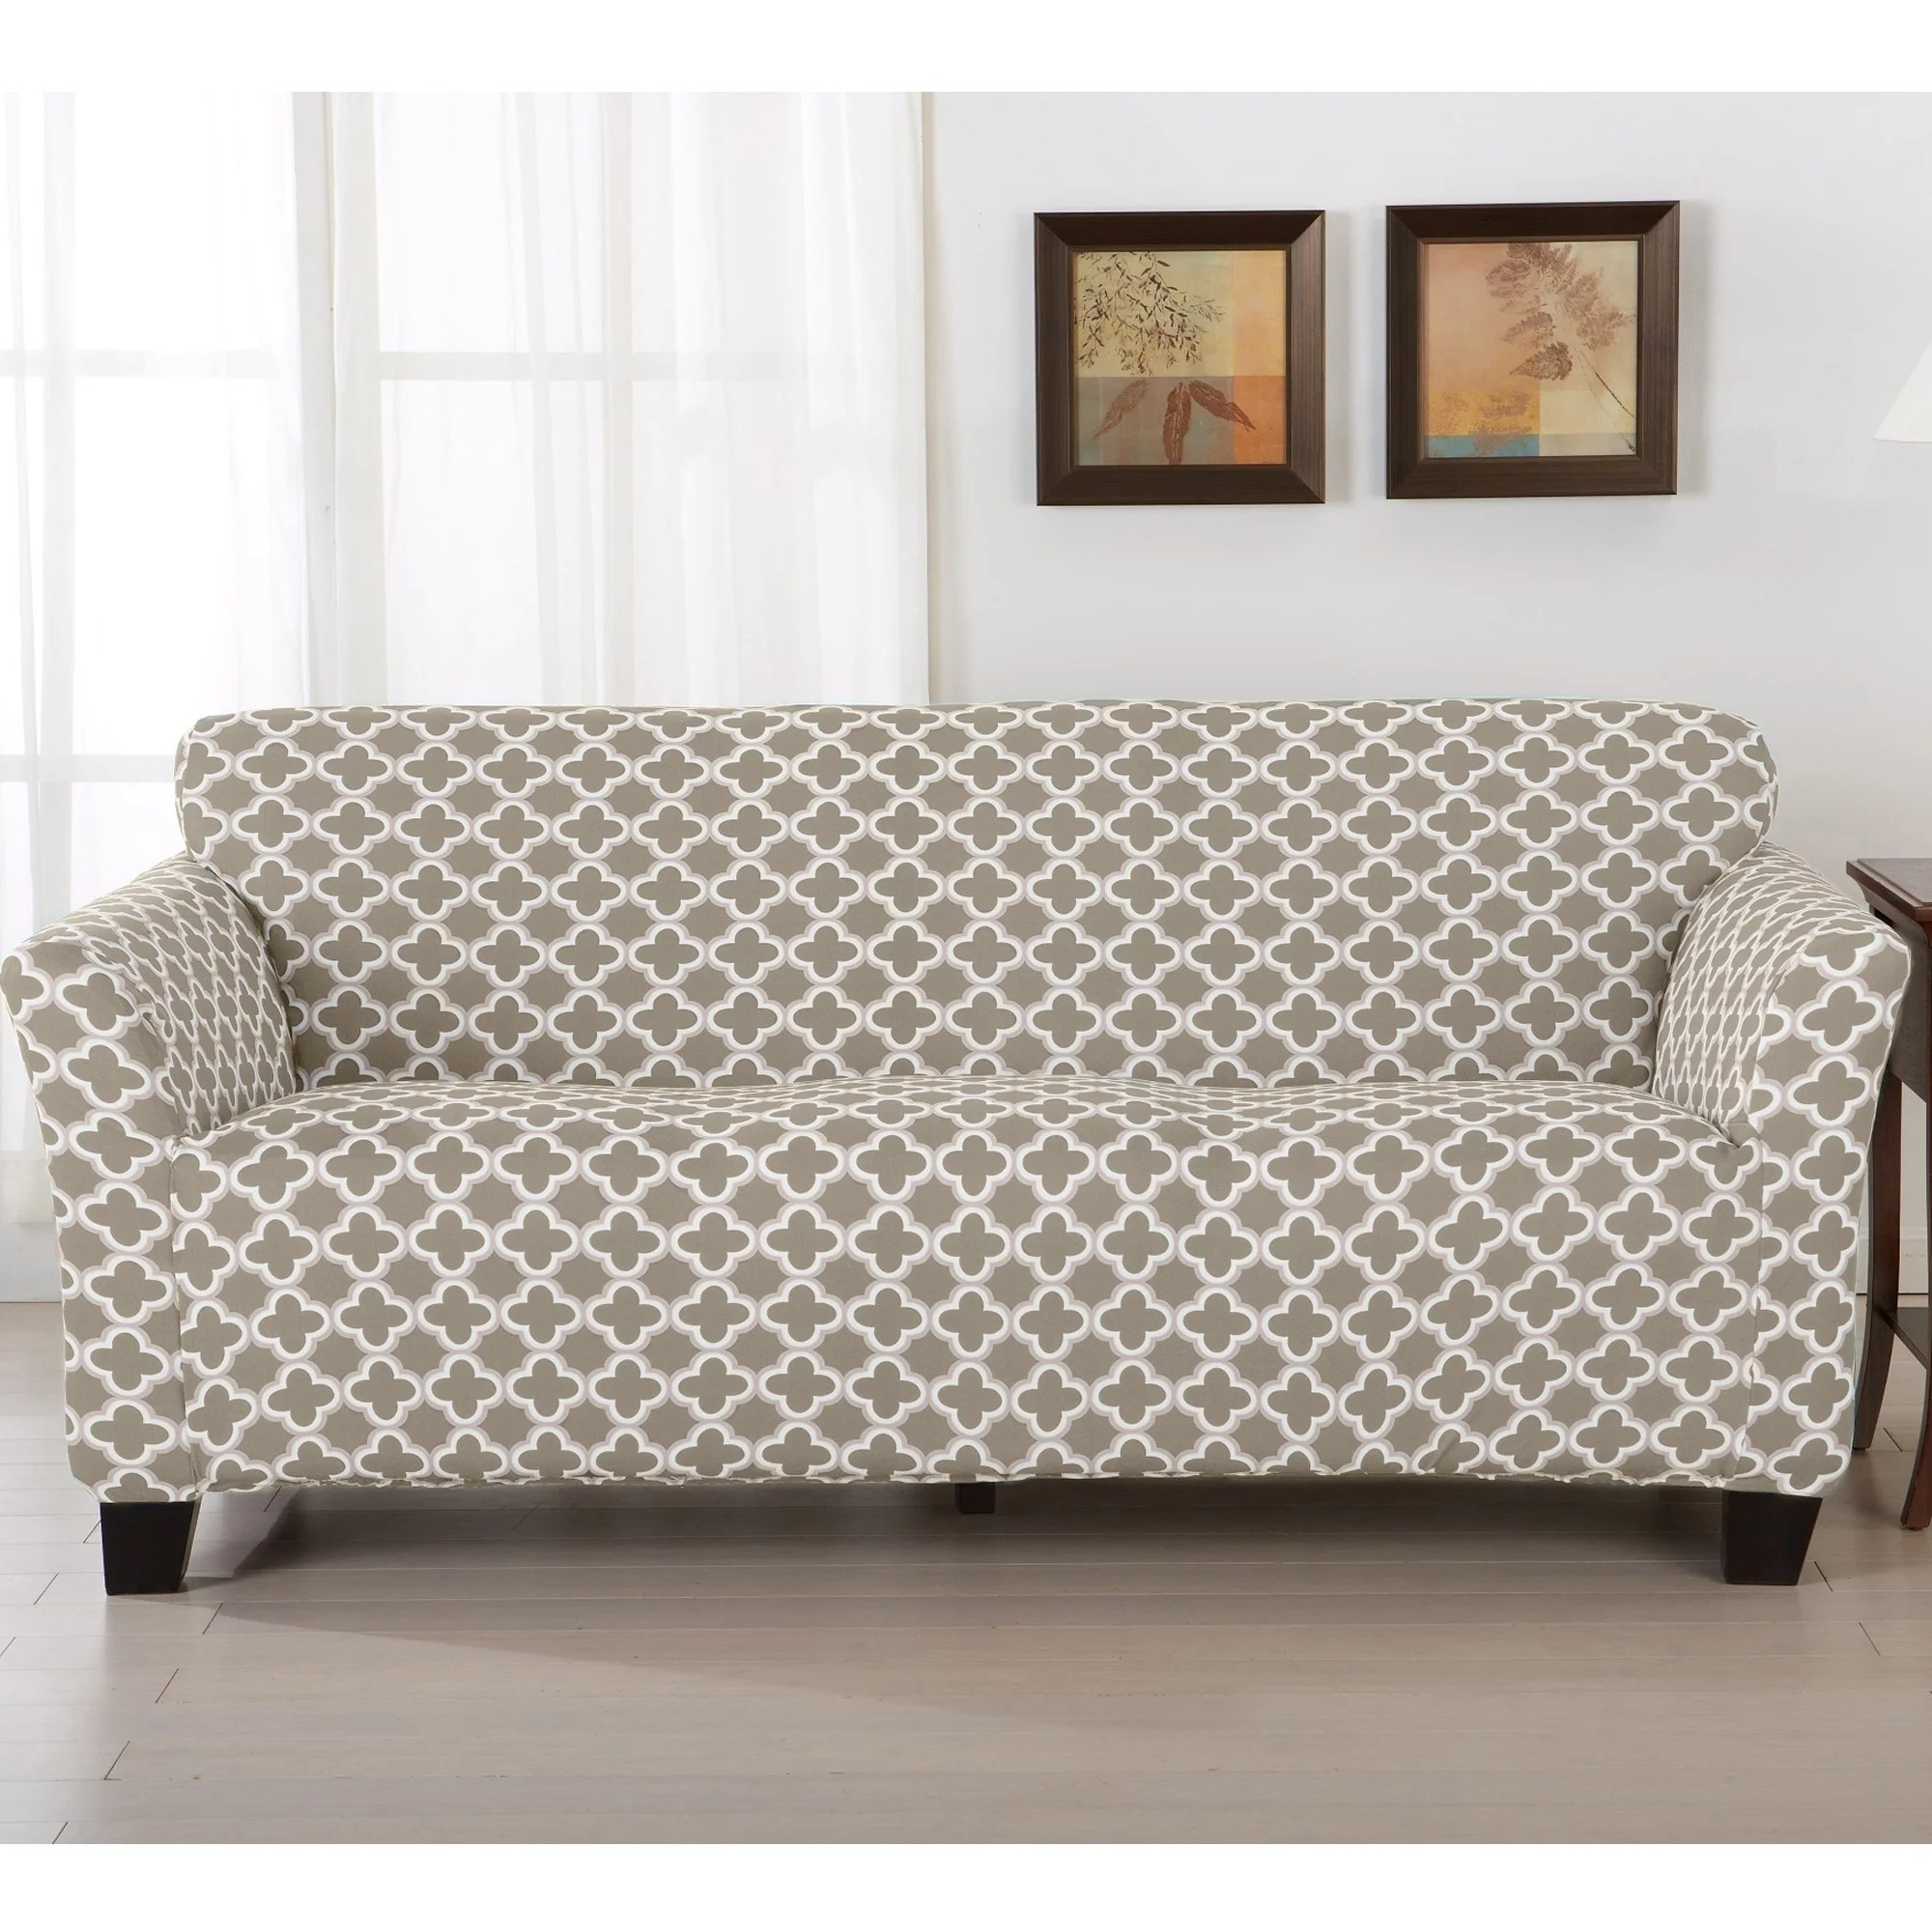 Sofa Slipcovers Home Fashion Designs Brenna Collection Stretch Form Fitted Sofa Slipcover